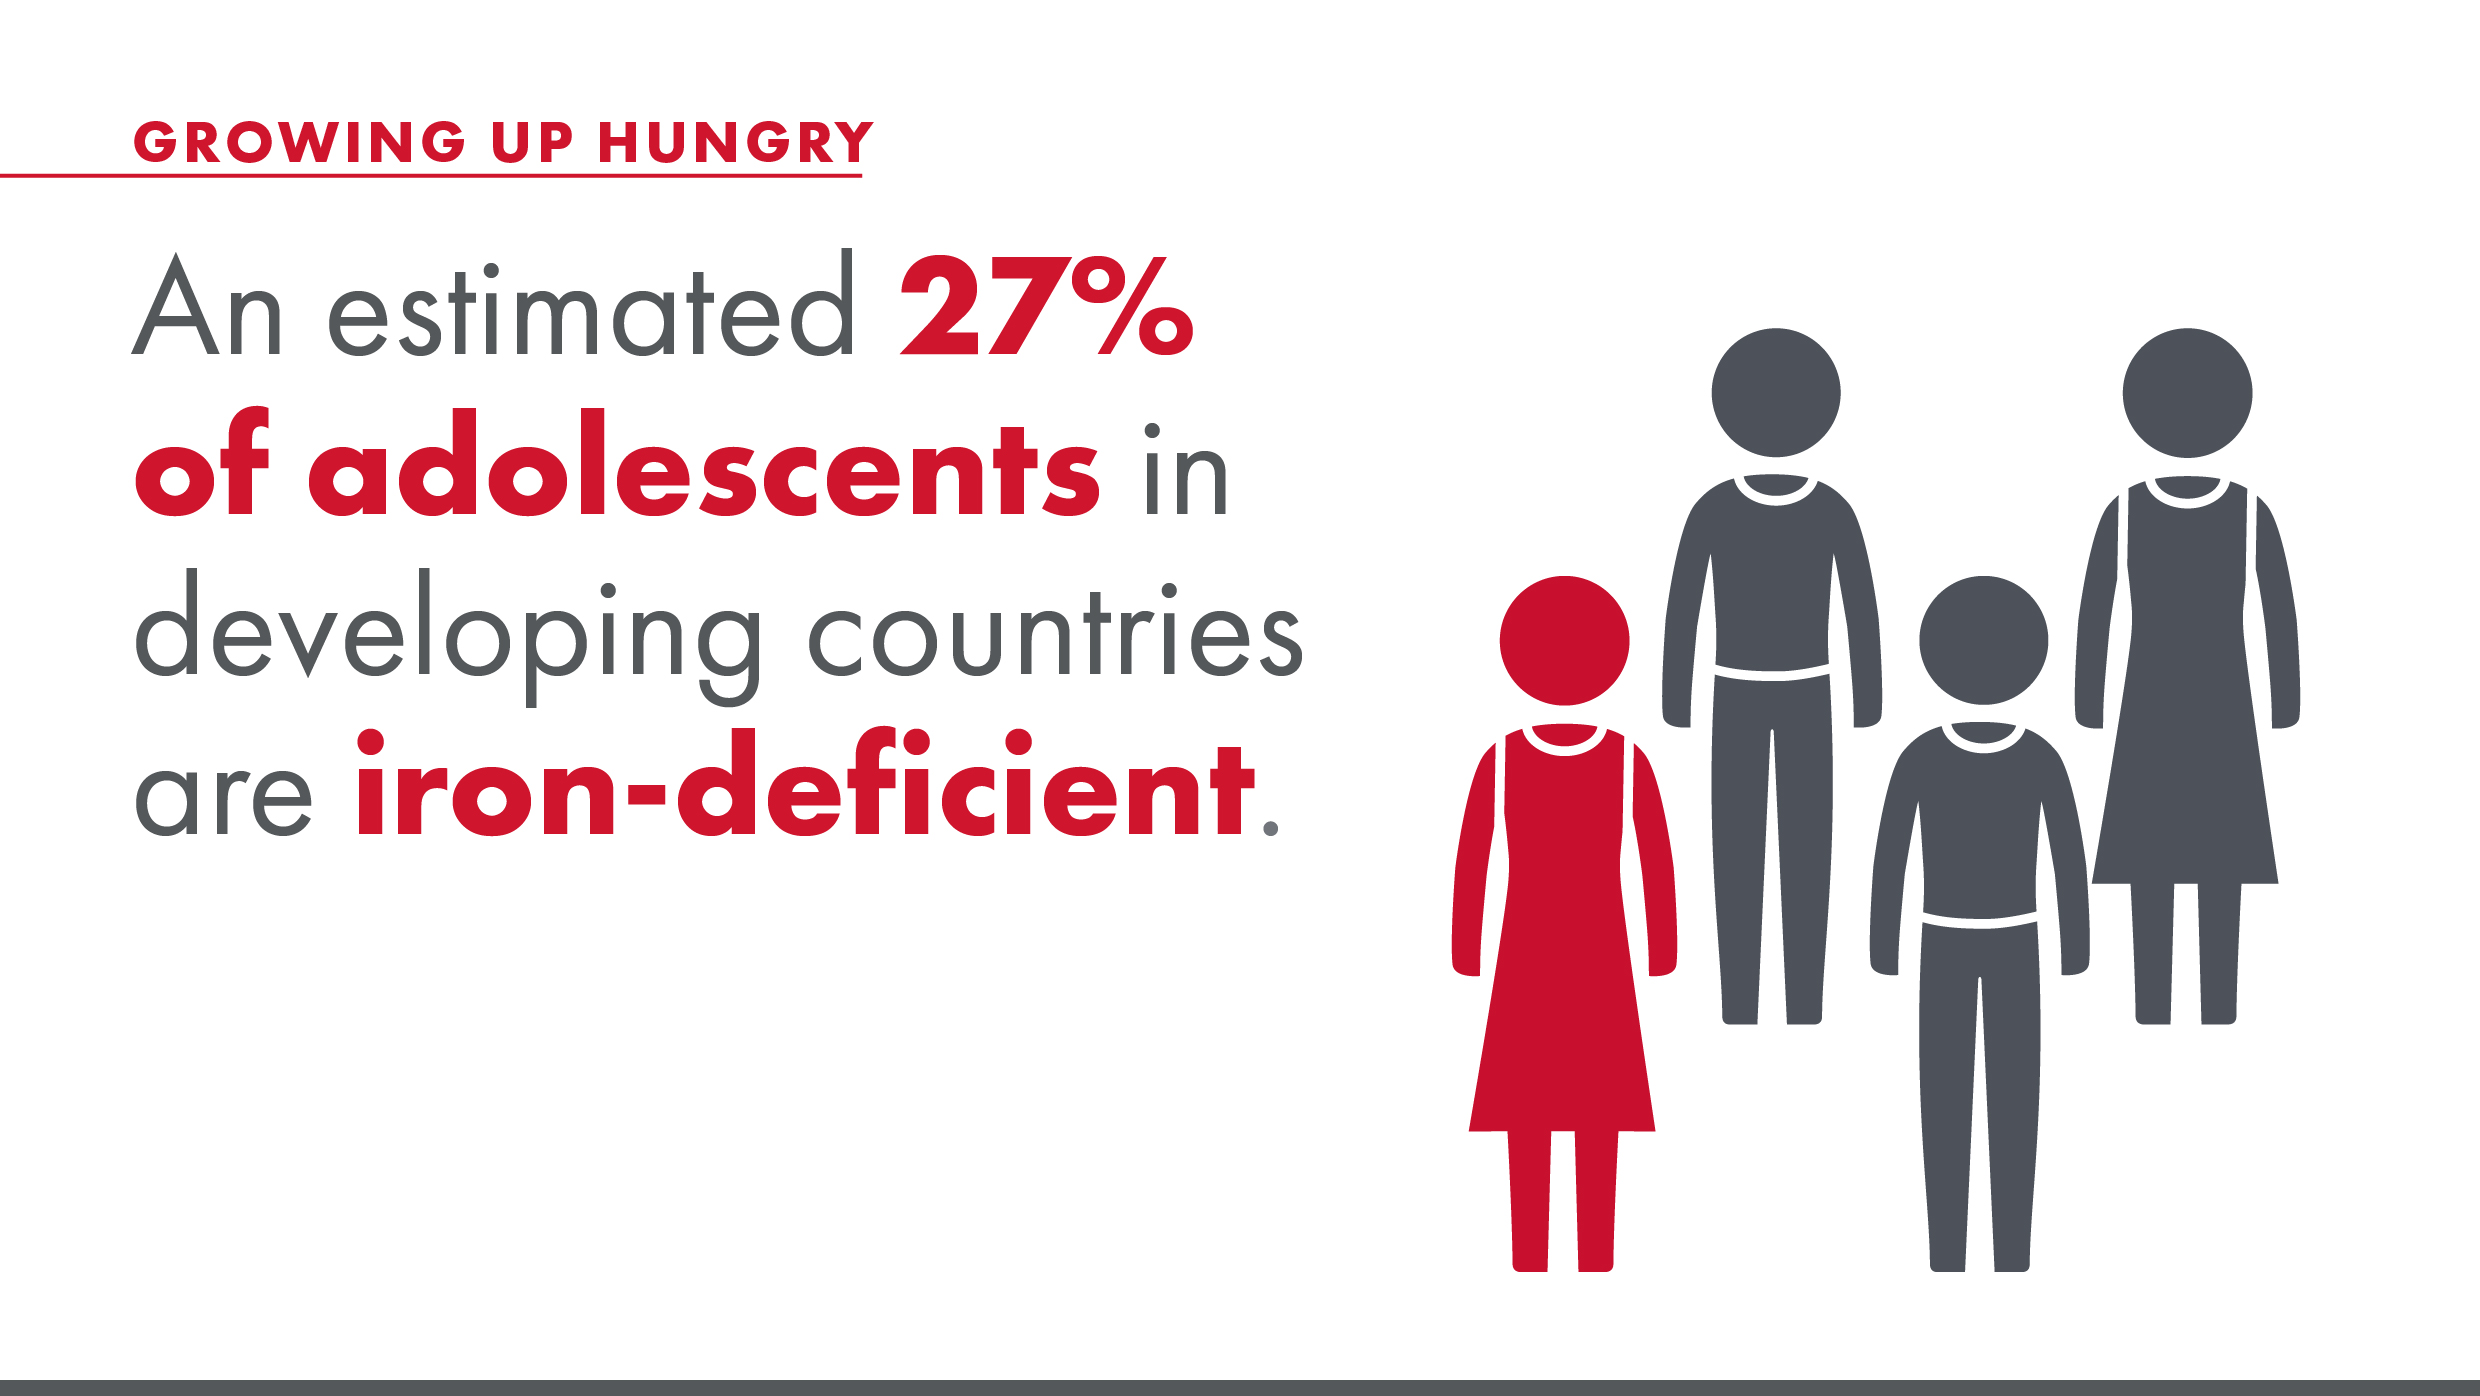 An estimated 27% of adolescents in developing countries are iron-deficient.